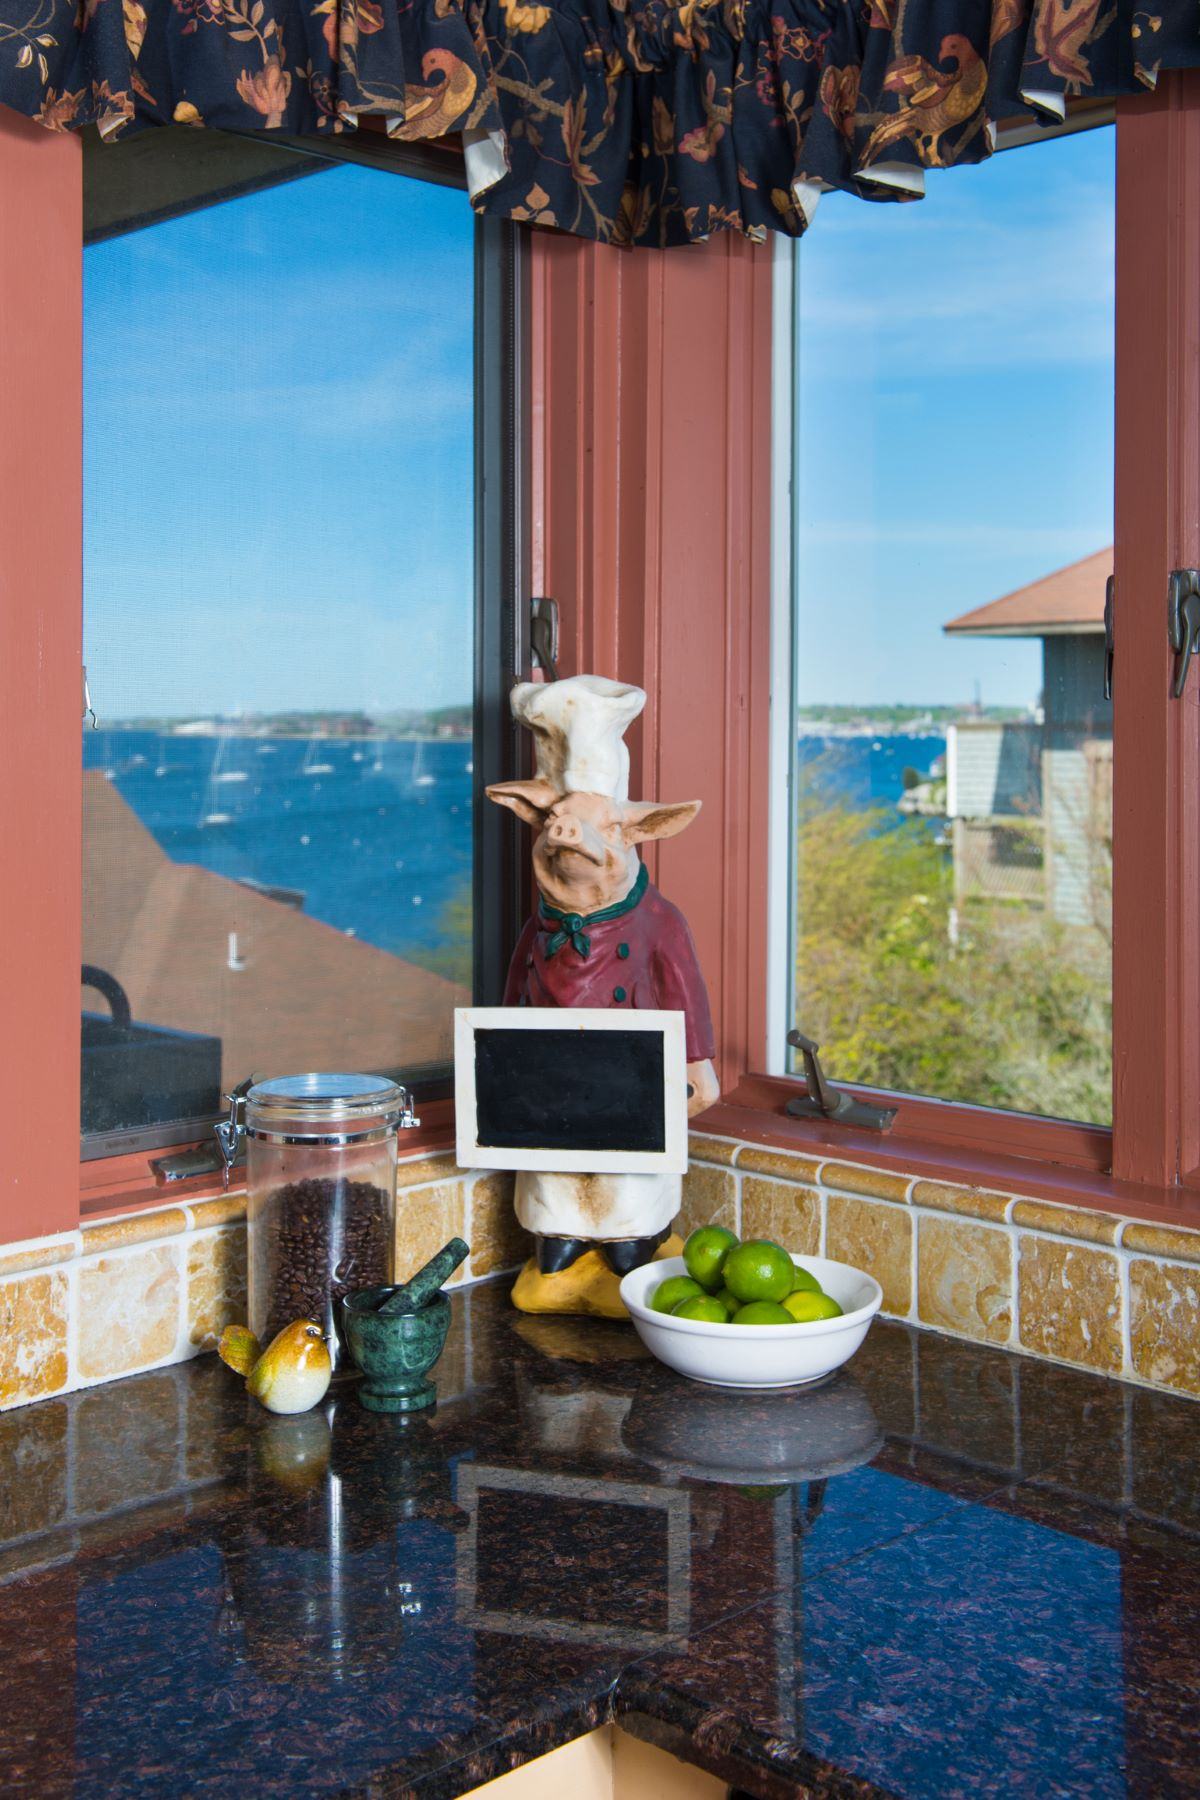 Additional photo for property listing at Brenton's Cove 157 Harrison Avenue 17 Newport, Rhode Island 02840 United States